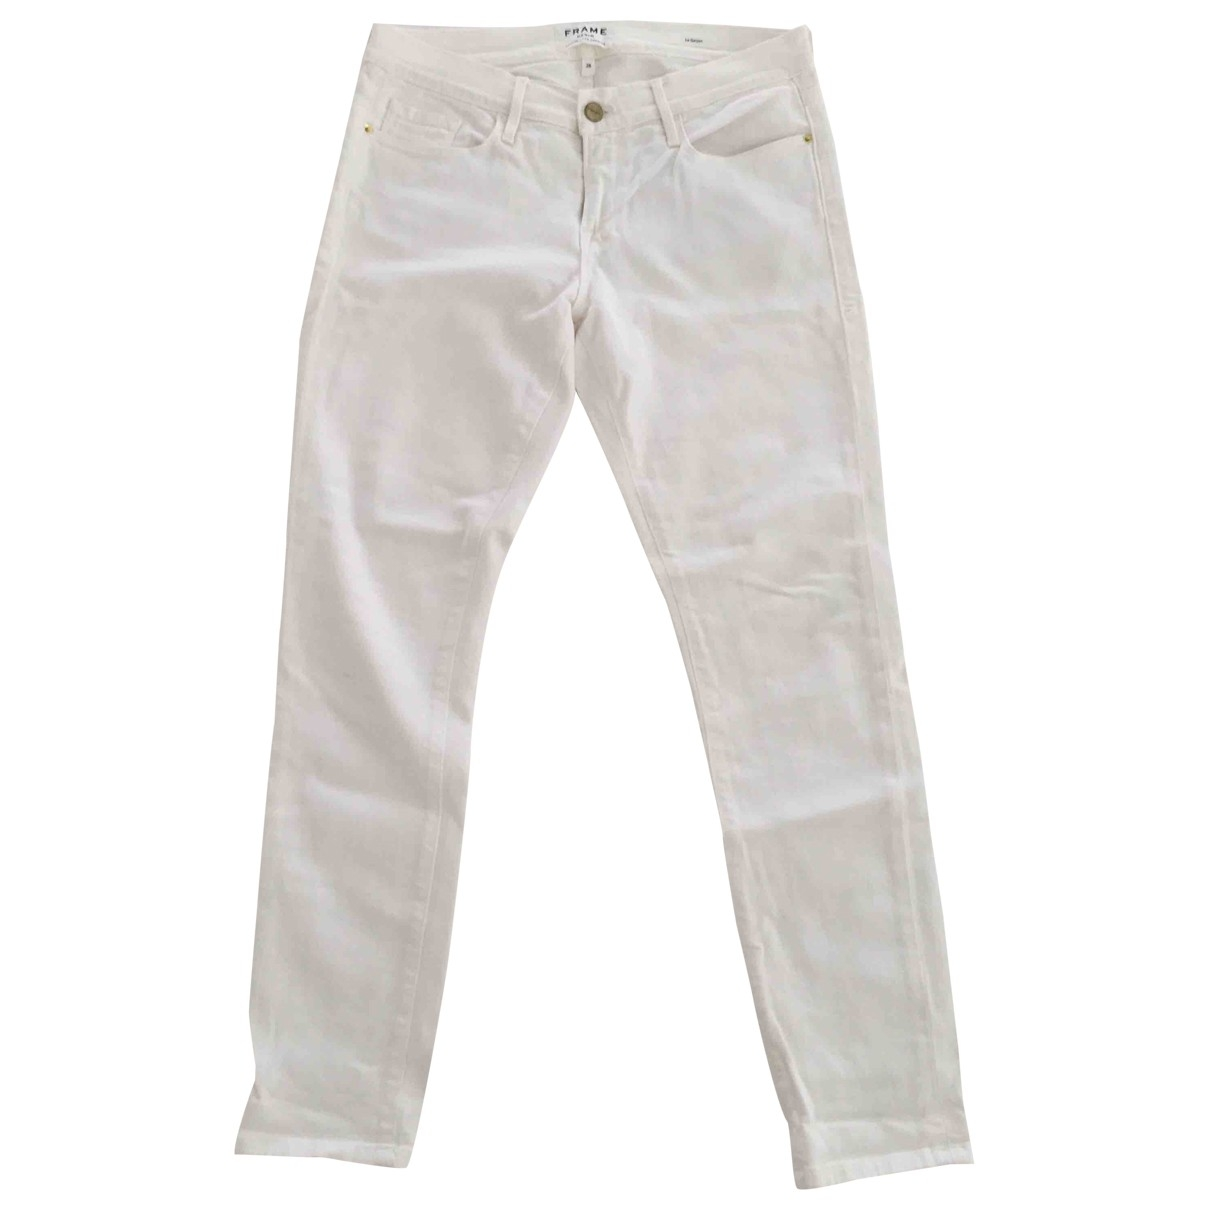 Frame Denim \N White Denim - Jeans Jeans for Women 28 US